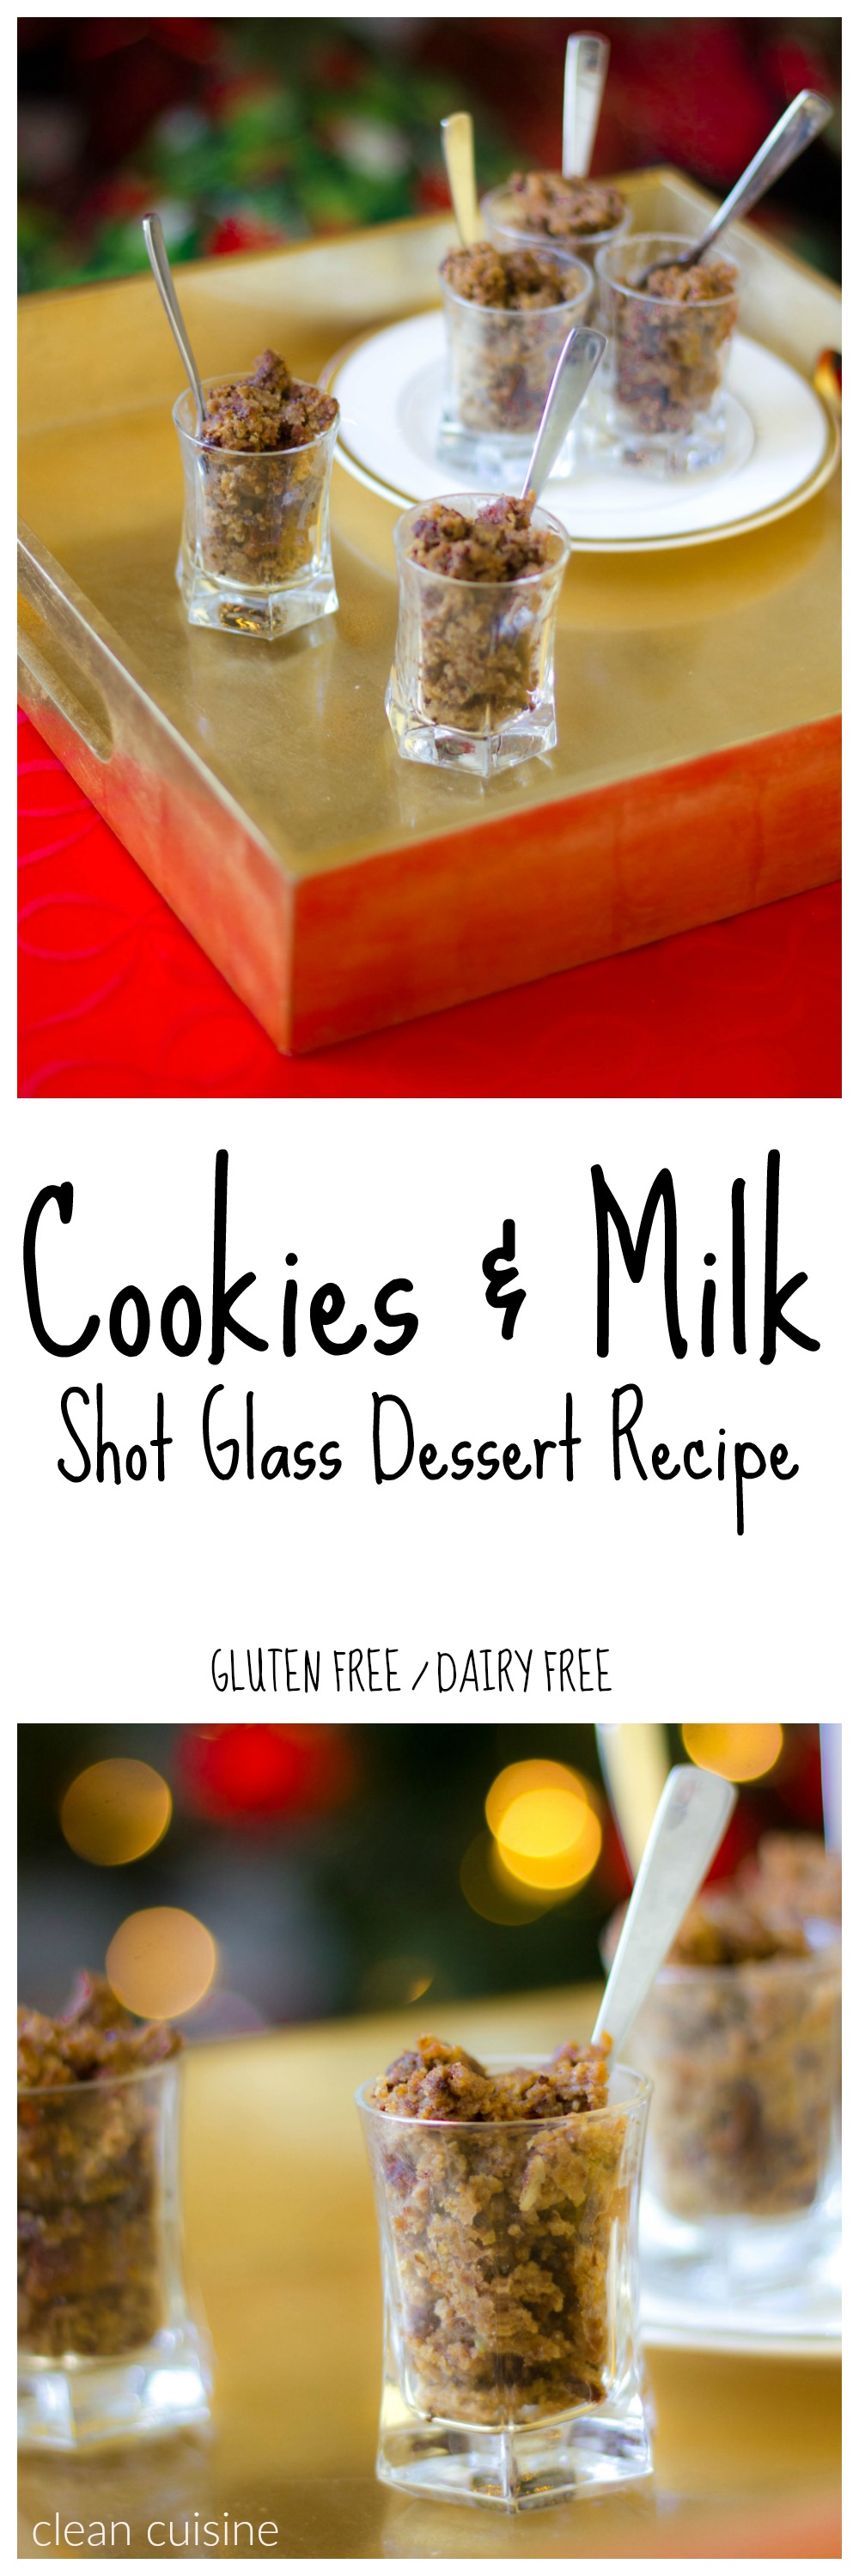 Shot Glass Dessert Recipes